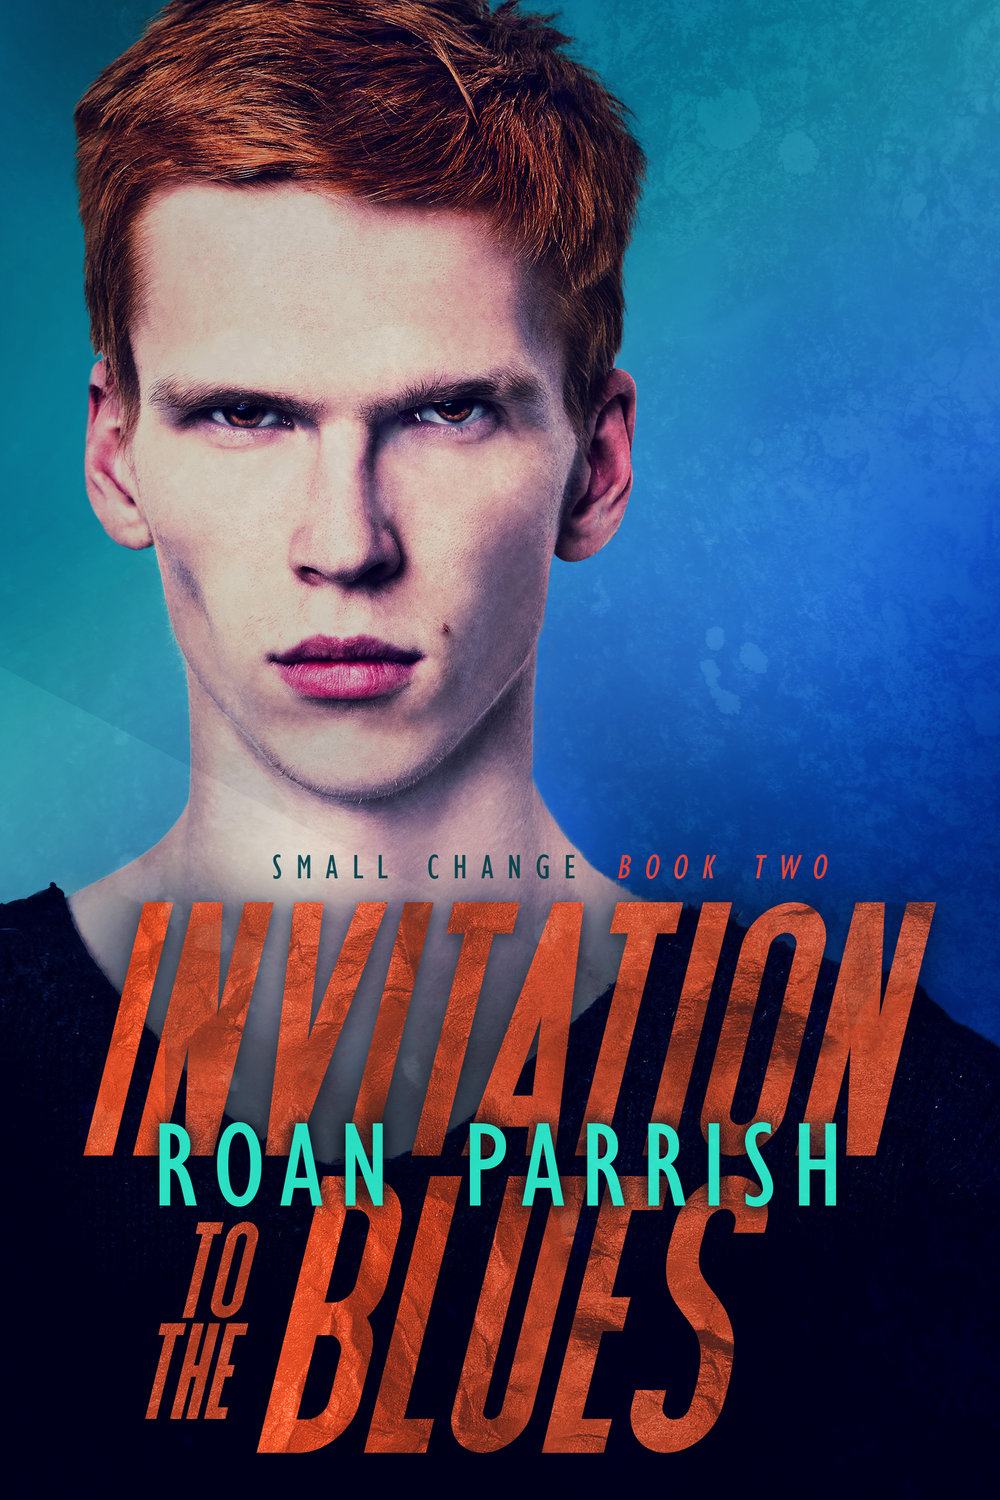 Roan Parrish is the author of contemporary queer and M/M romance. She was a Goodreads Choice Award Nominee for Debut Goodreads Author in 2015 for In the Middle of Somewhere.